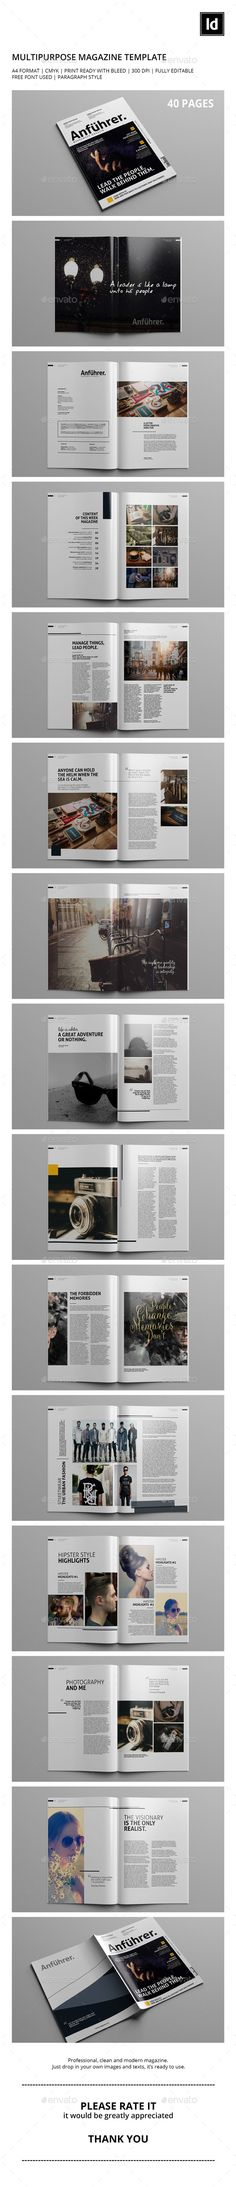 40 Pages | Multipurpose Magazine Template — InDesign INDD #a4 #magazine • Available here → https://graphicriver.net/item/40-pages-multipurpose-magazine-template/10469913?ref=pxcr